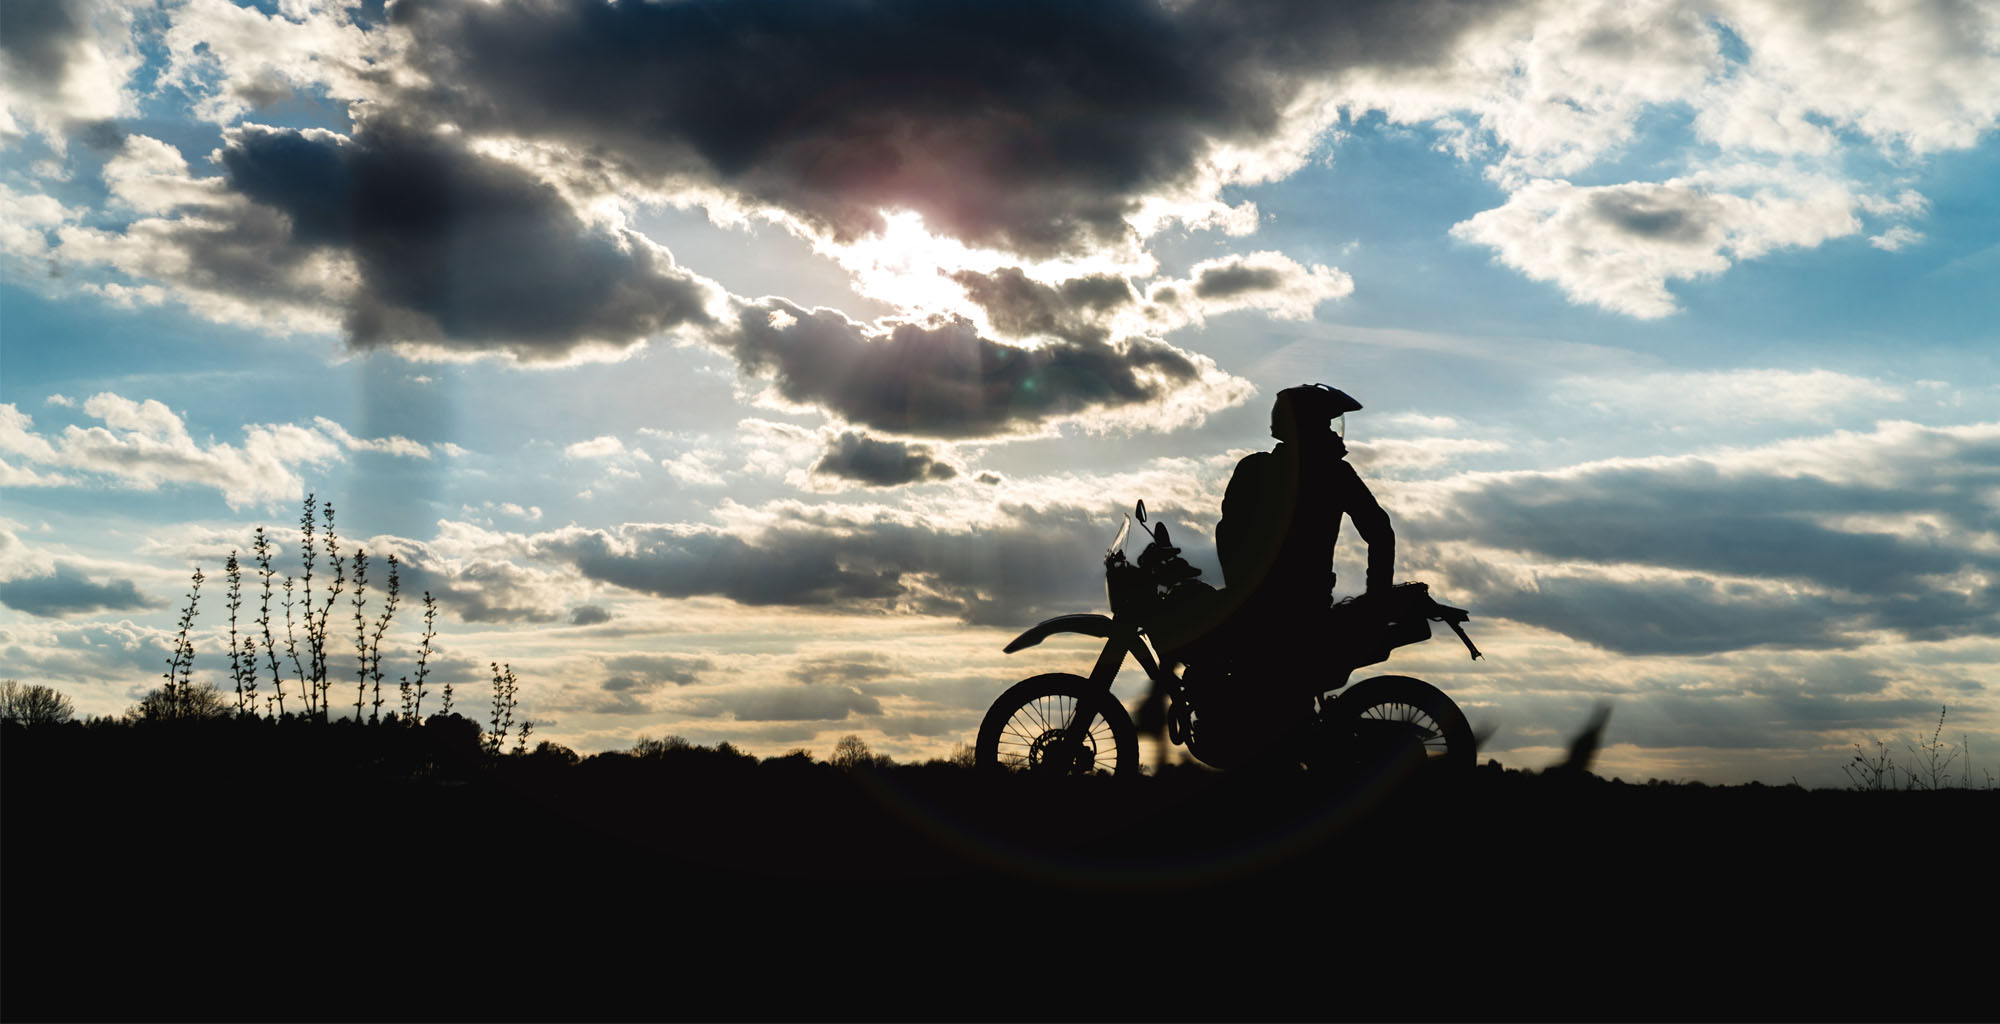 Message from Chris Bourque MCC Board Chair, image of a motorcycle rider in silhouette